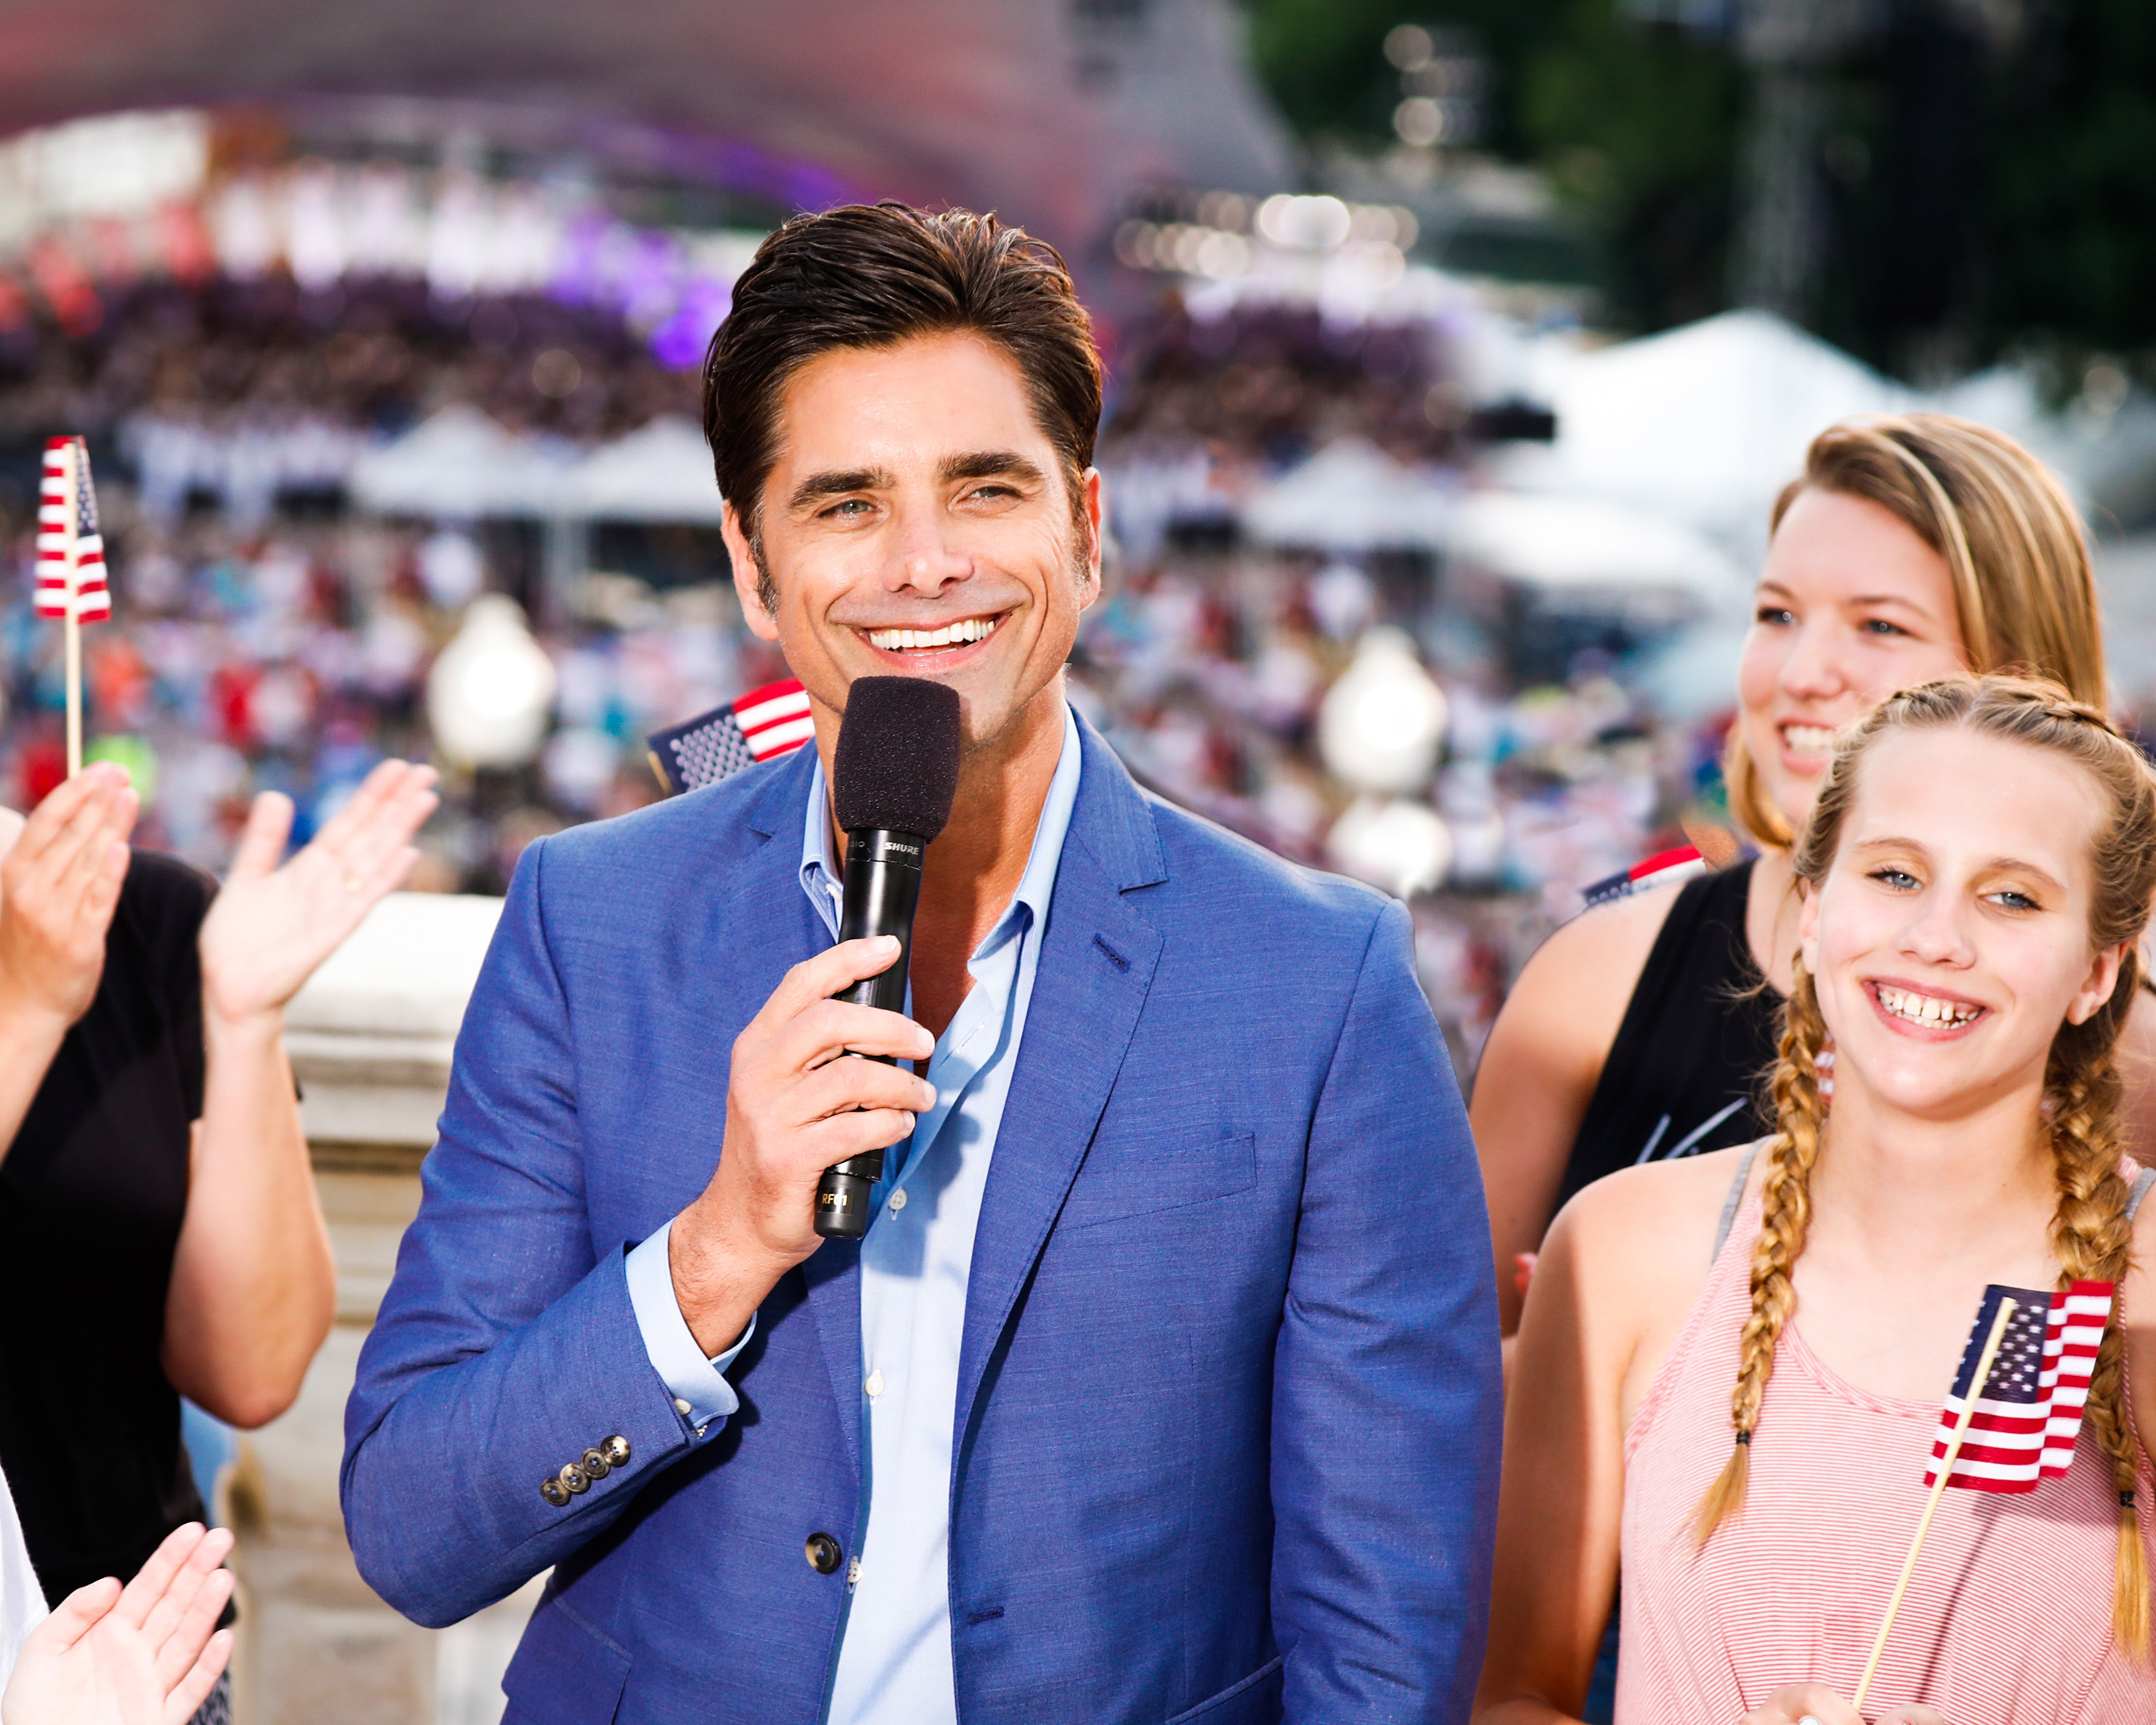 Two-time Emmy Award-nominated actor and producer John Stamos co-hosts the national July 4 TV tradition on PBS, A CAPITOL FOURTH, with Vanessa Williams on Saturday, July 4, 2020. Photo Credit: Paul Morigi/Getty Images for Capital Concerts